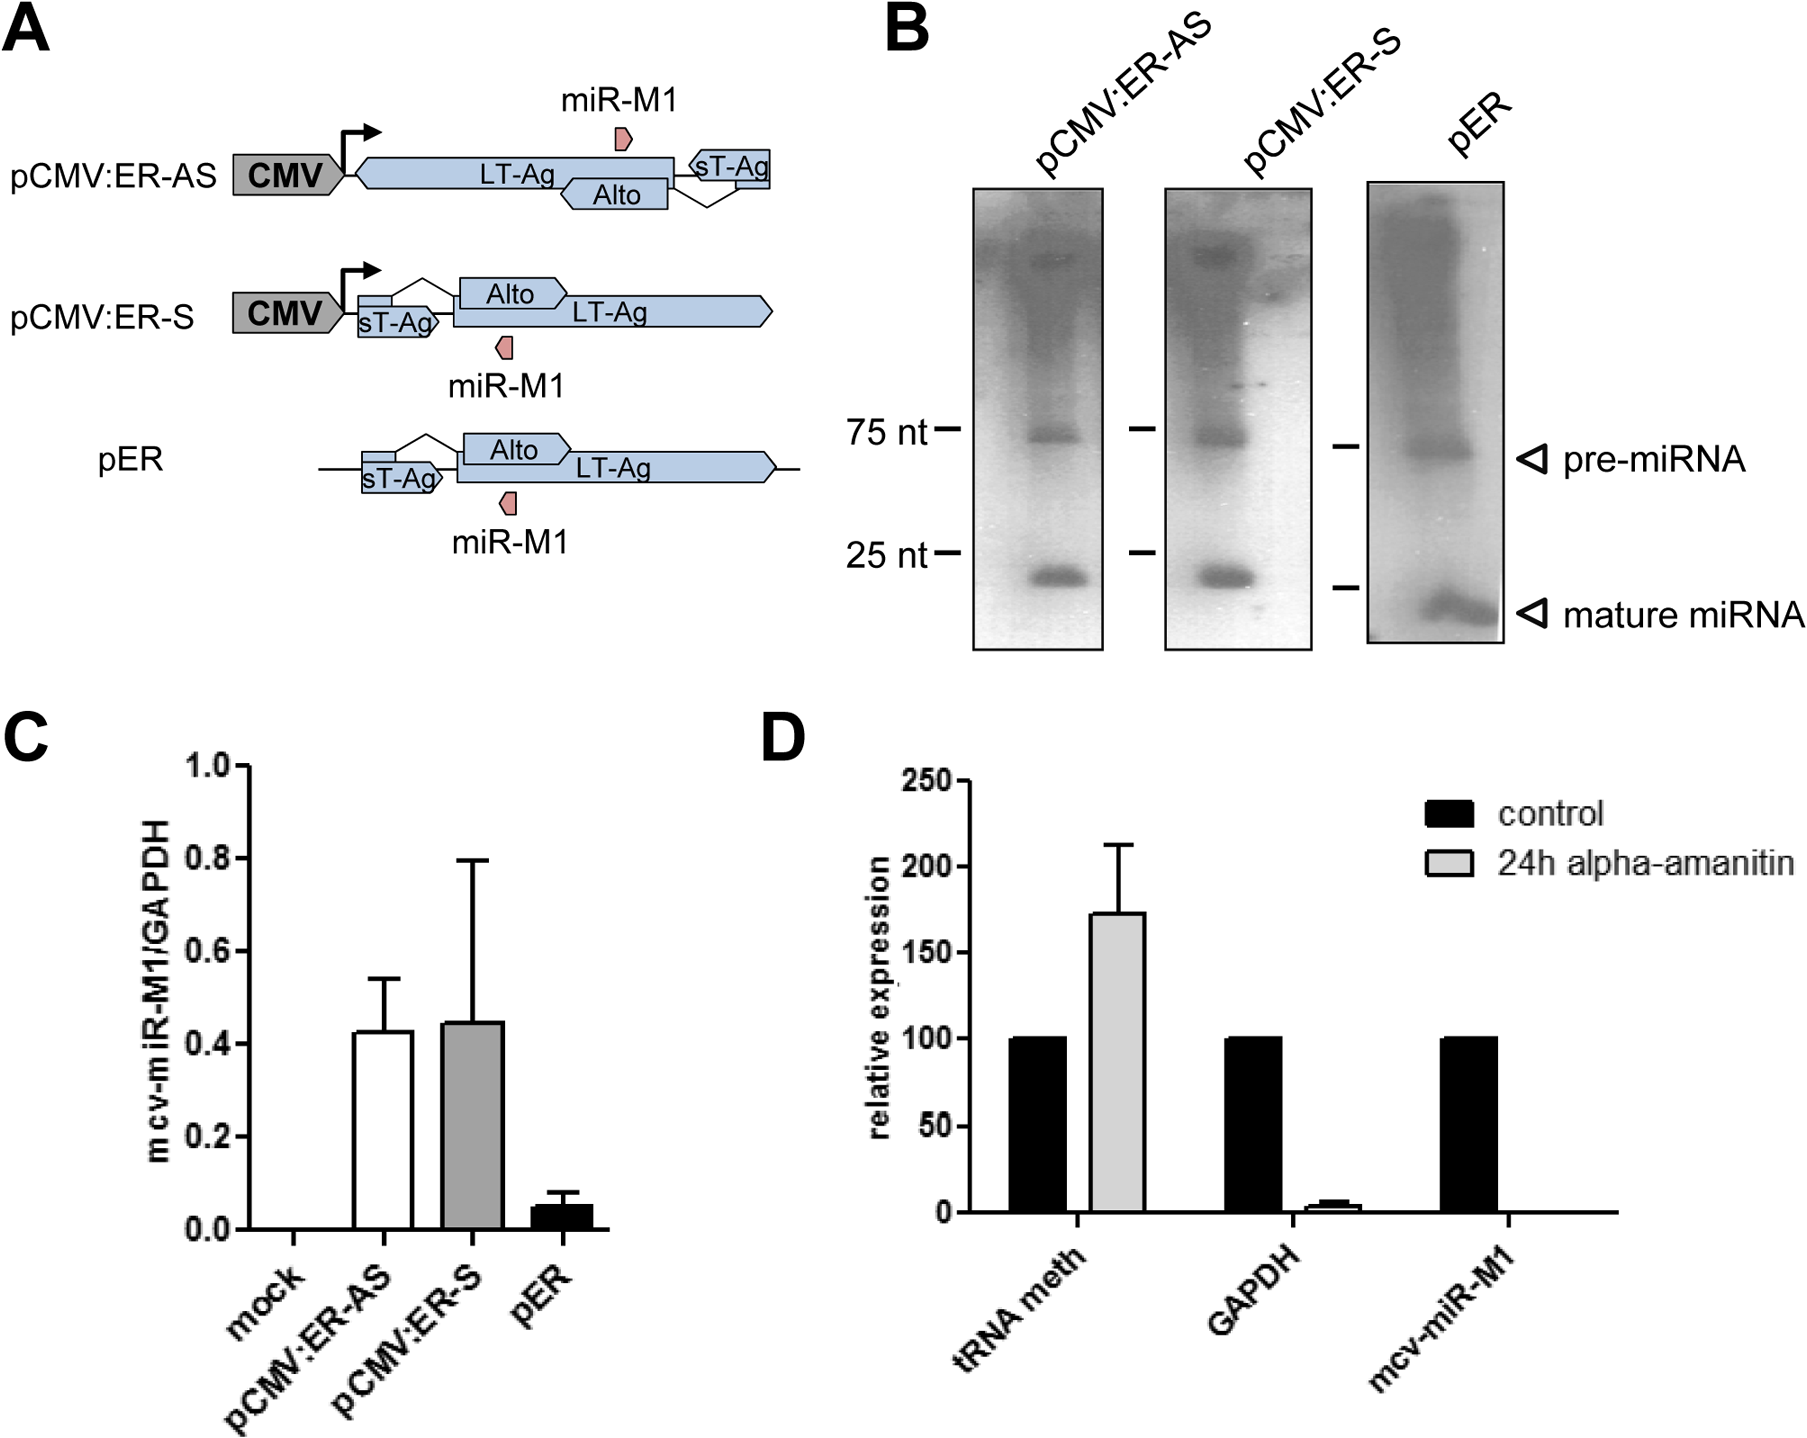 mcv-miR-M1 can be expressed independently of NCCR-initiated late gene expression.